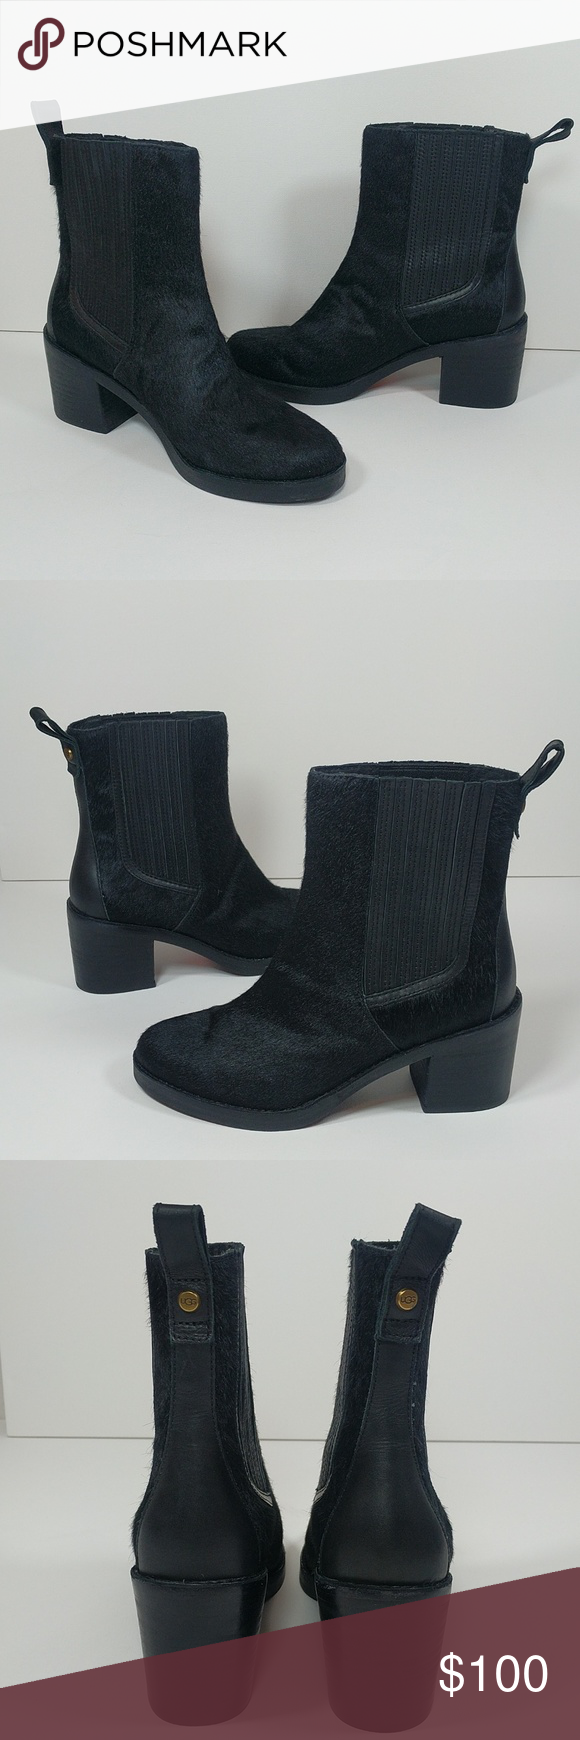 82c21ff0a65 NwT UGG genuine calf hair ankle boots w block heel Offers welcome ...